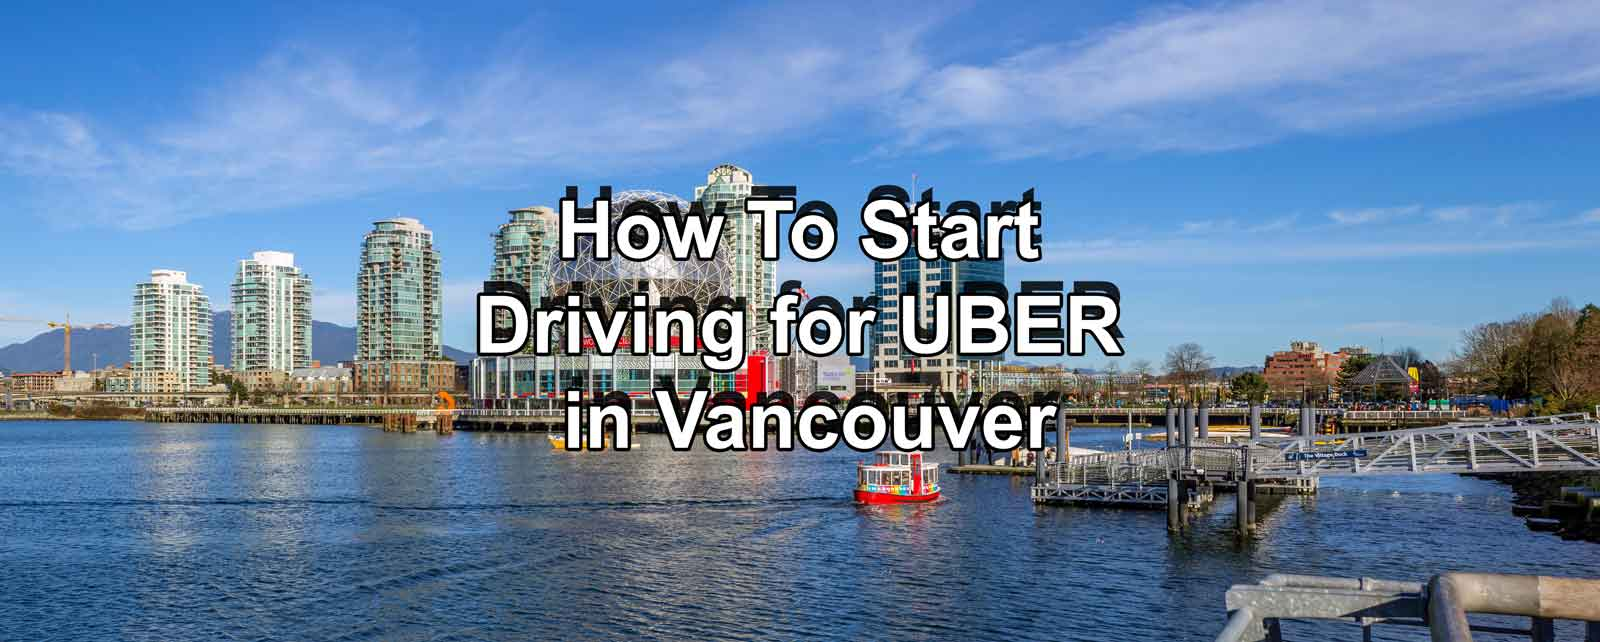 How To Start Driving for UBER in Vancouver - Igor Ryltsev